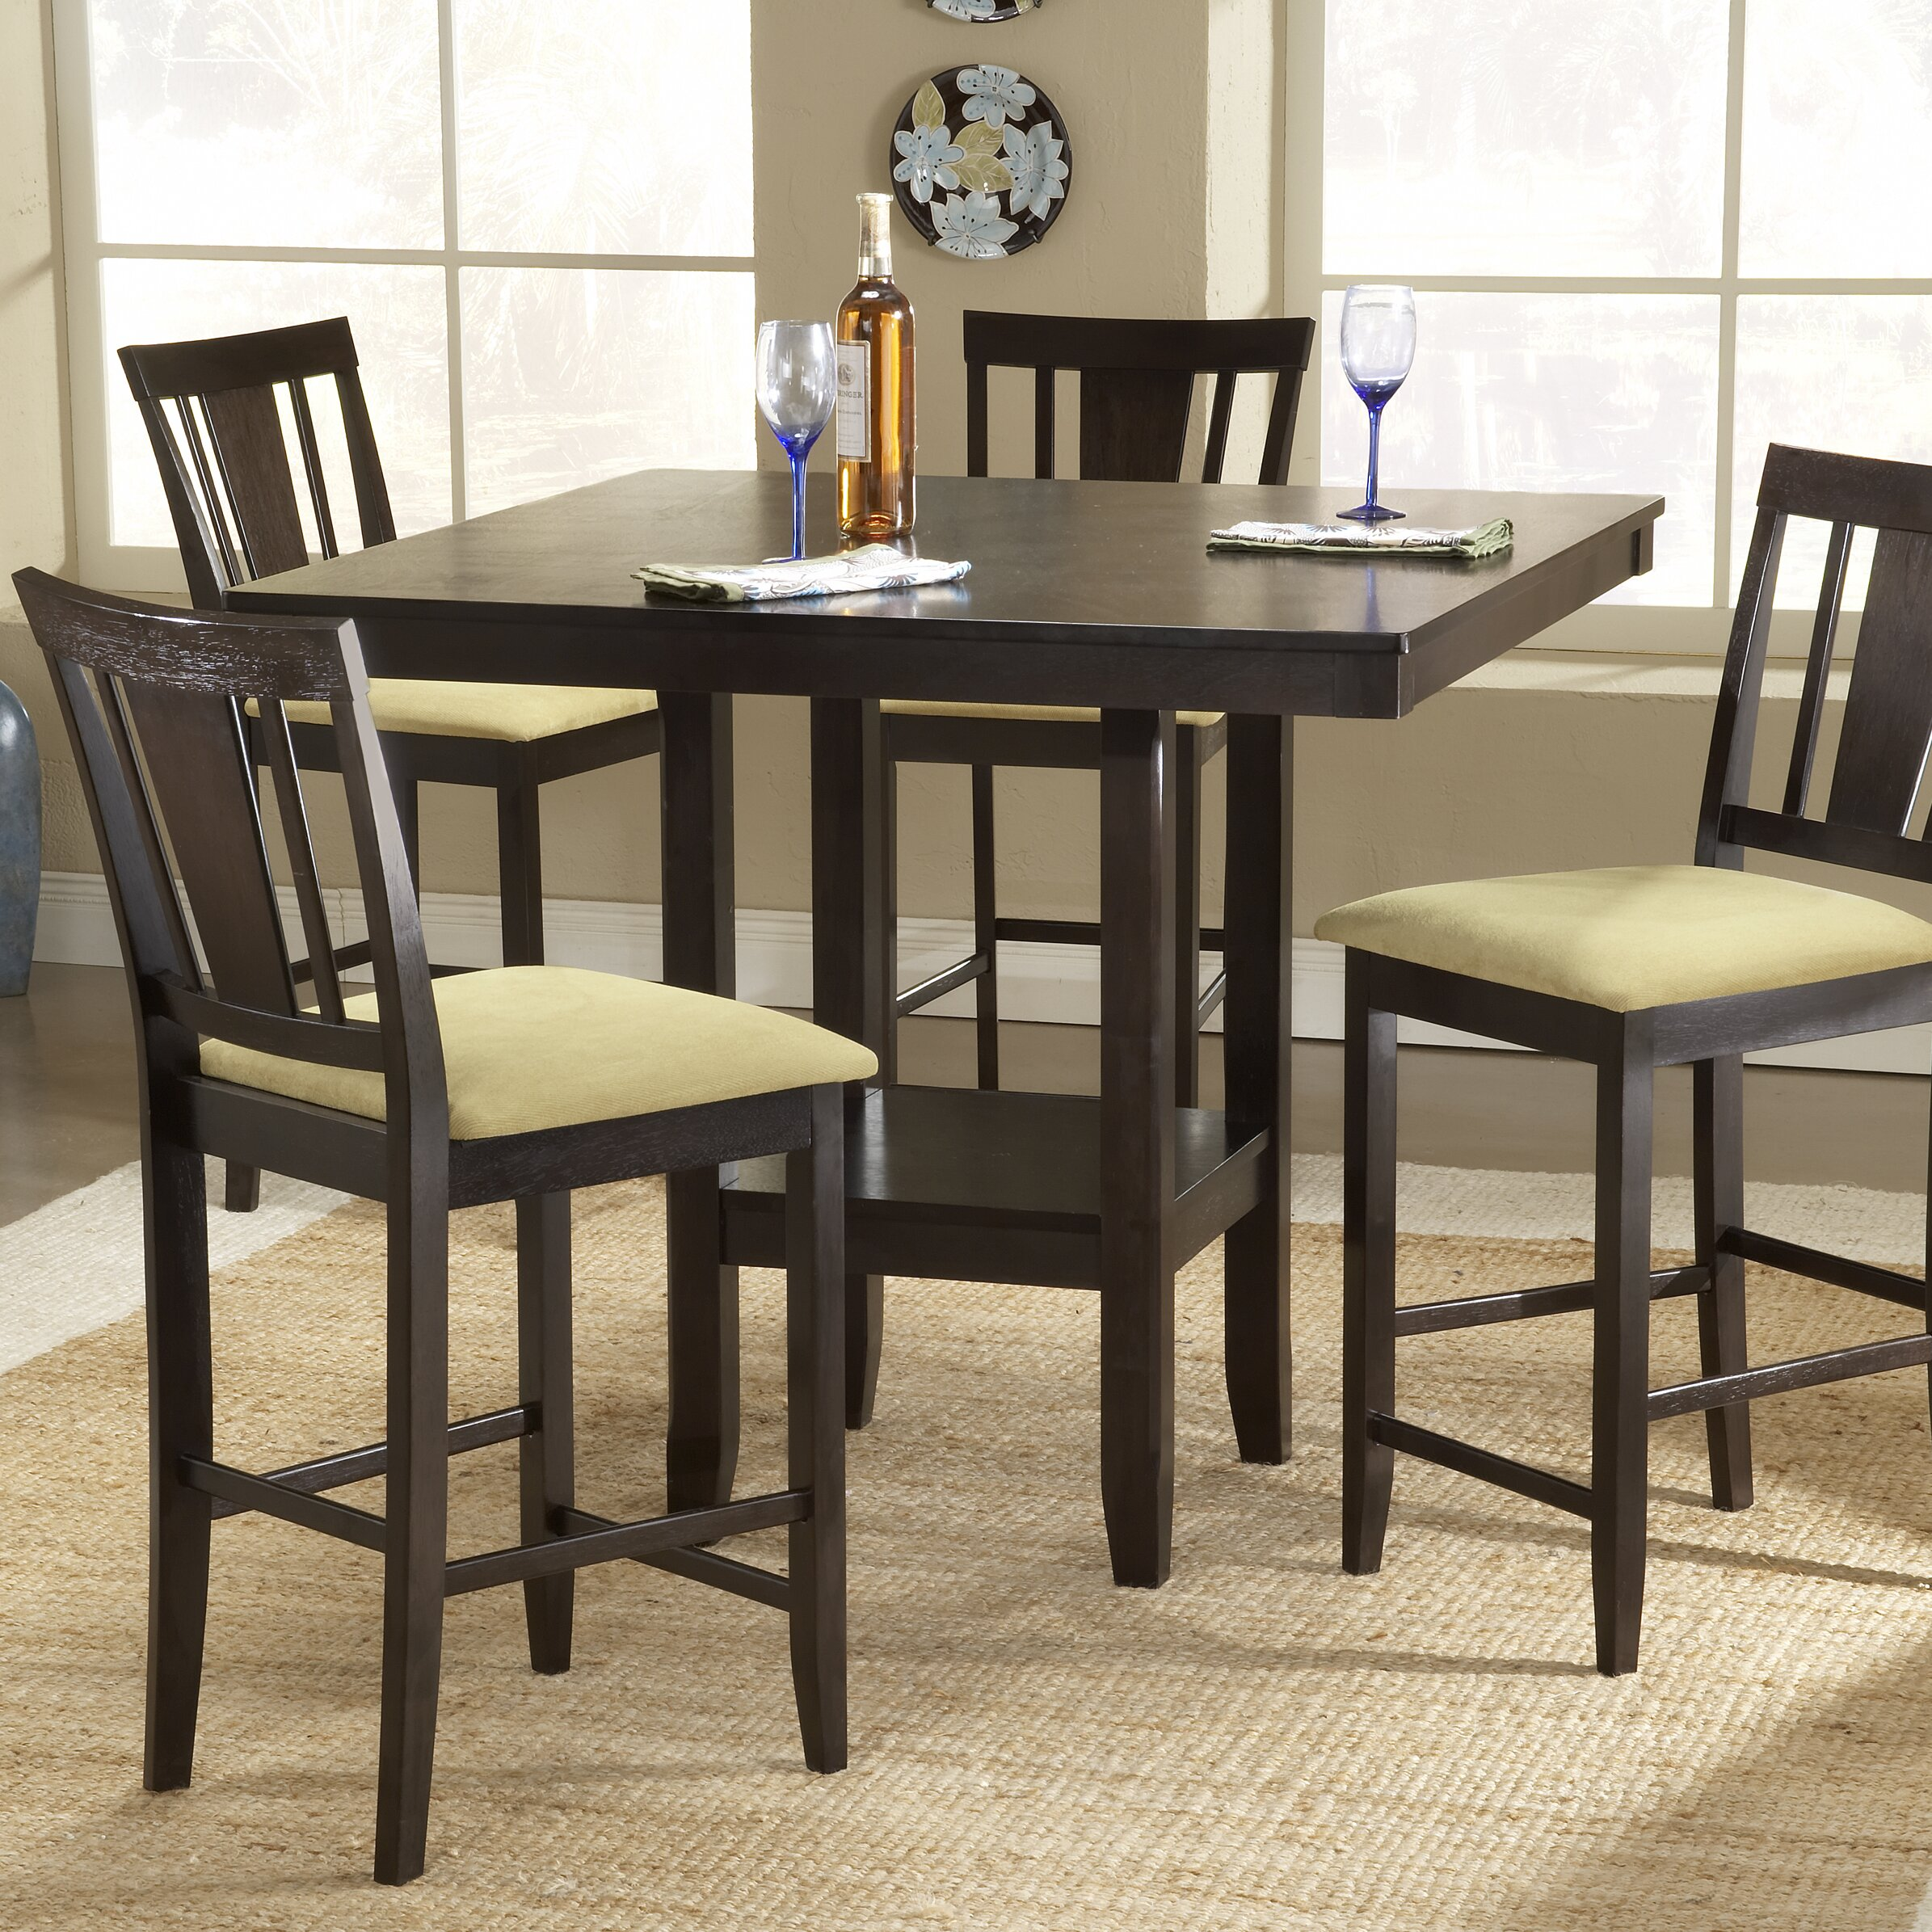 Hillsdale Arcadia Counter Height Dining Table Reviews Wayfair